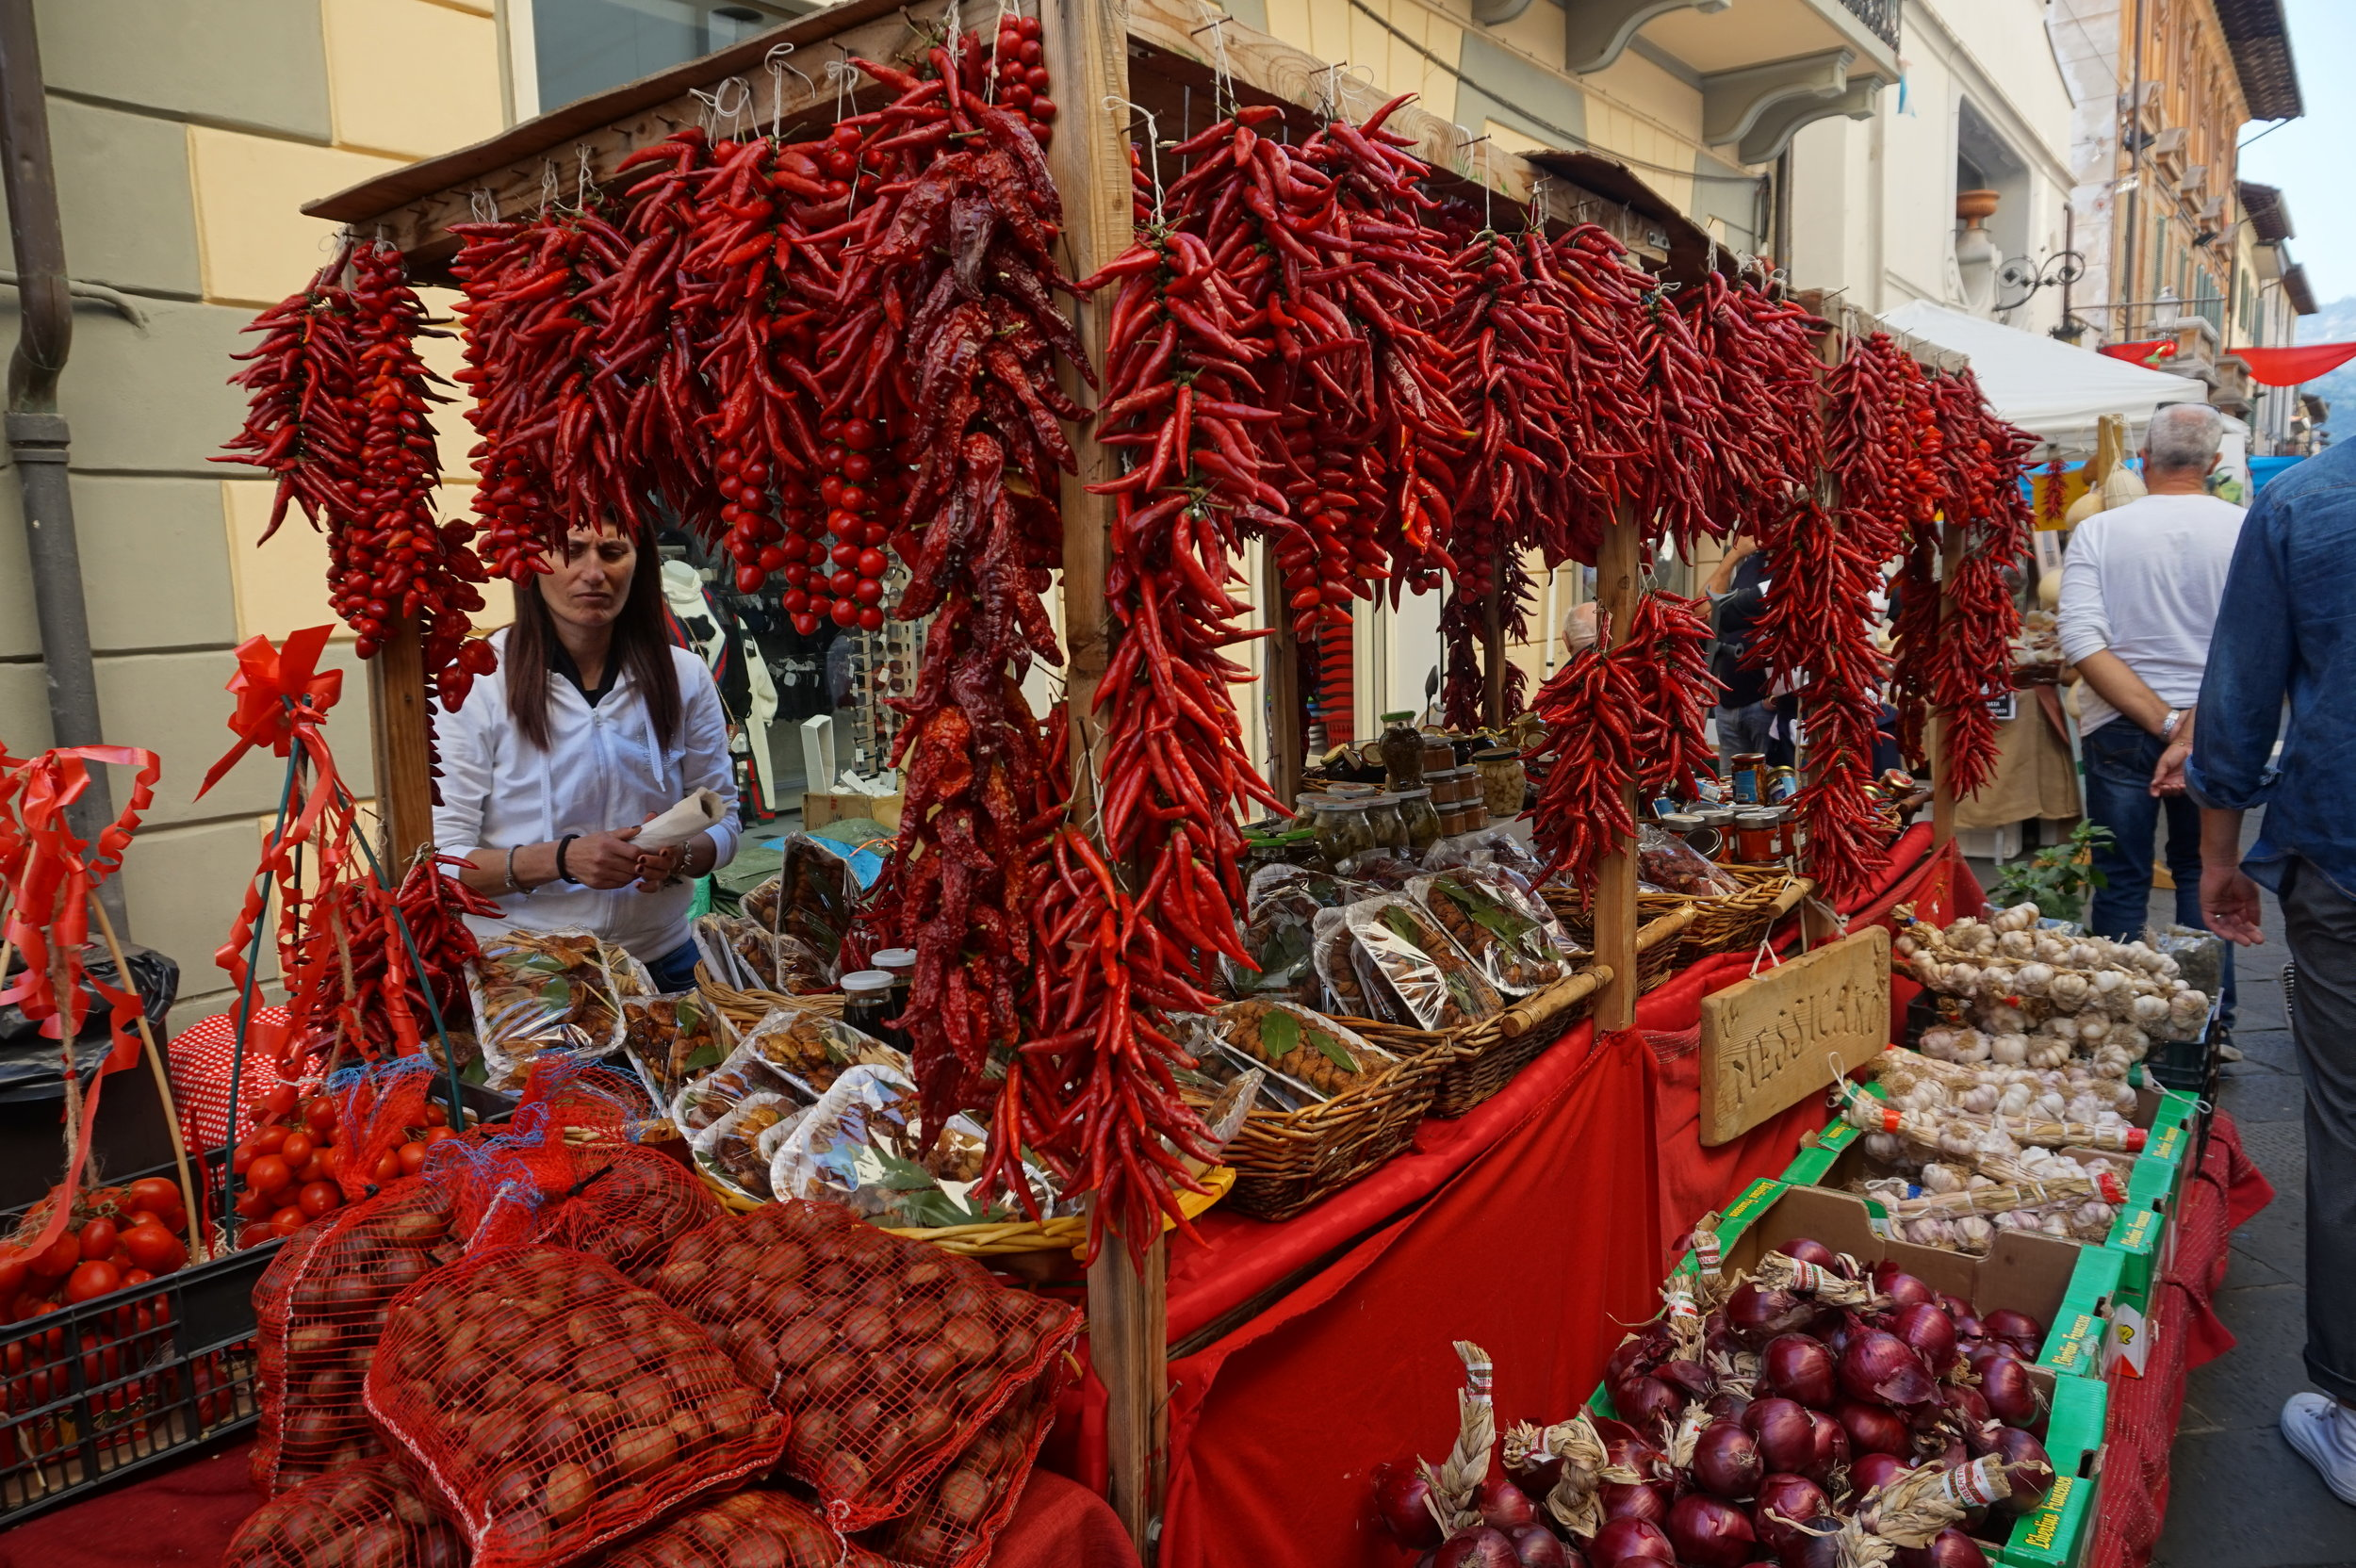 tuscany camaiore festival travel chilli food cooking kitchen family fun australia italy